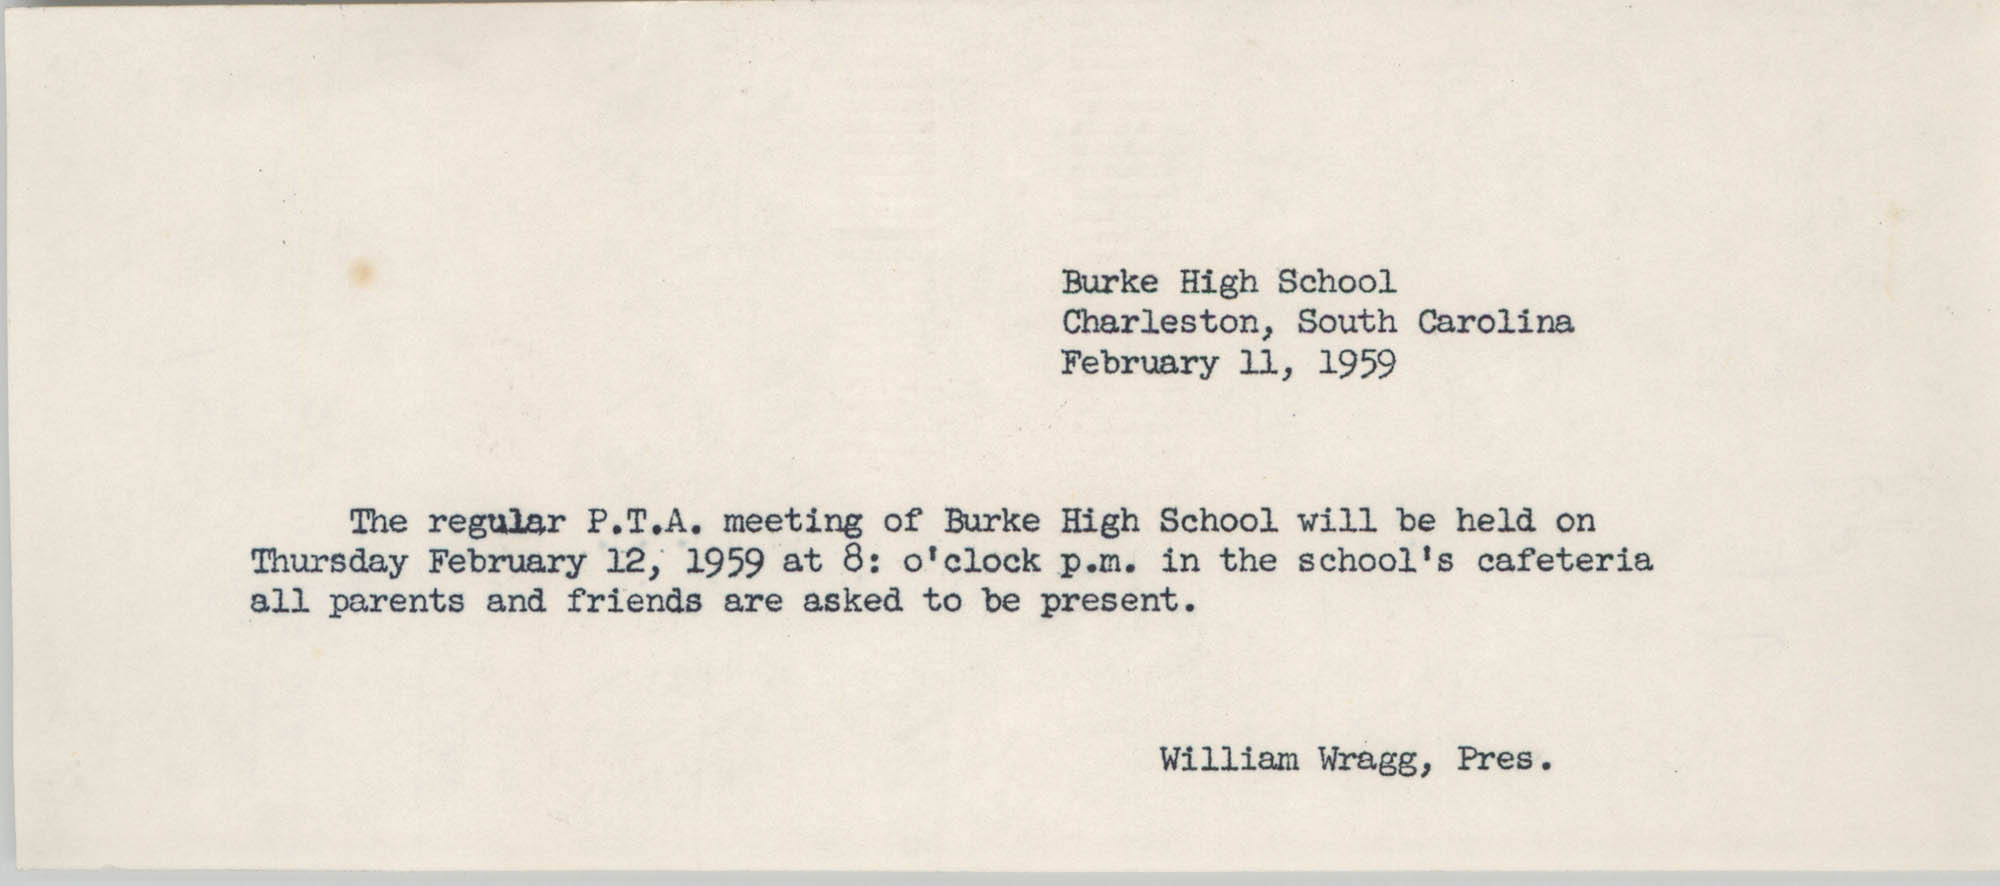 Burke High School Memorandum, February 11, 1959